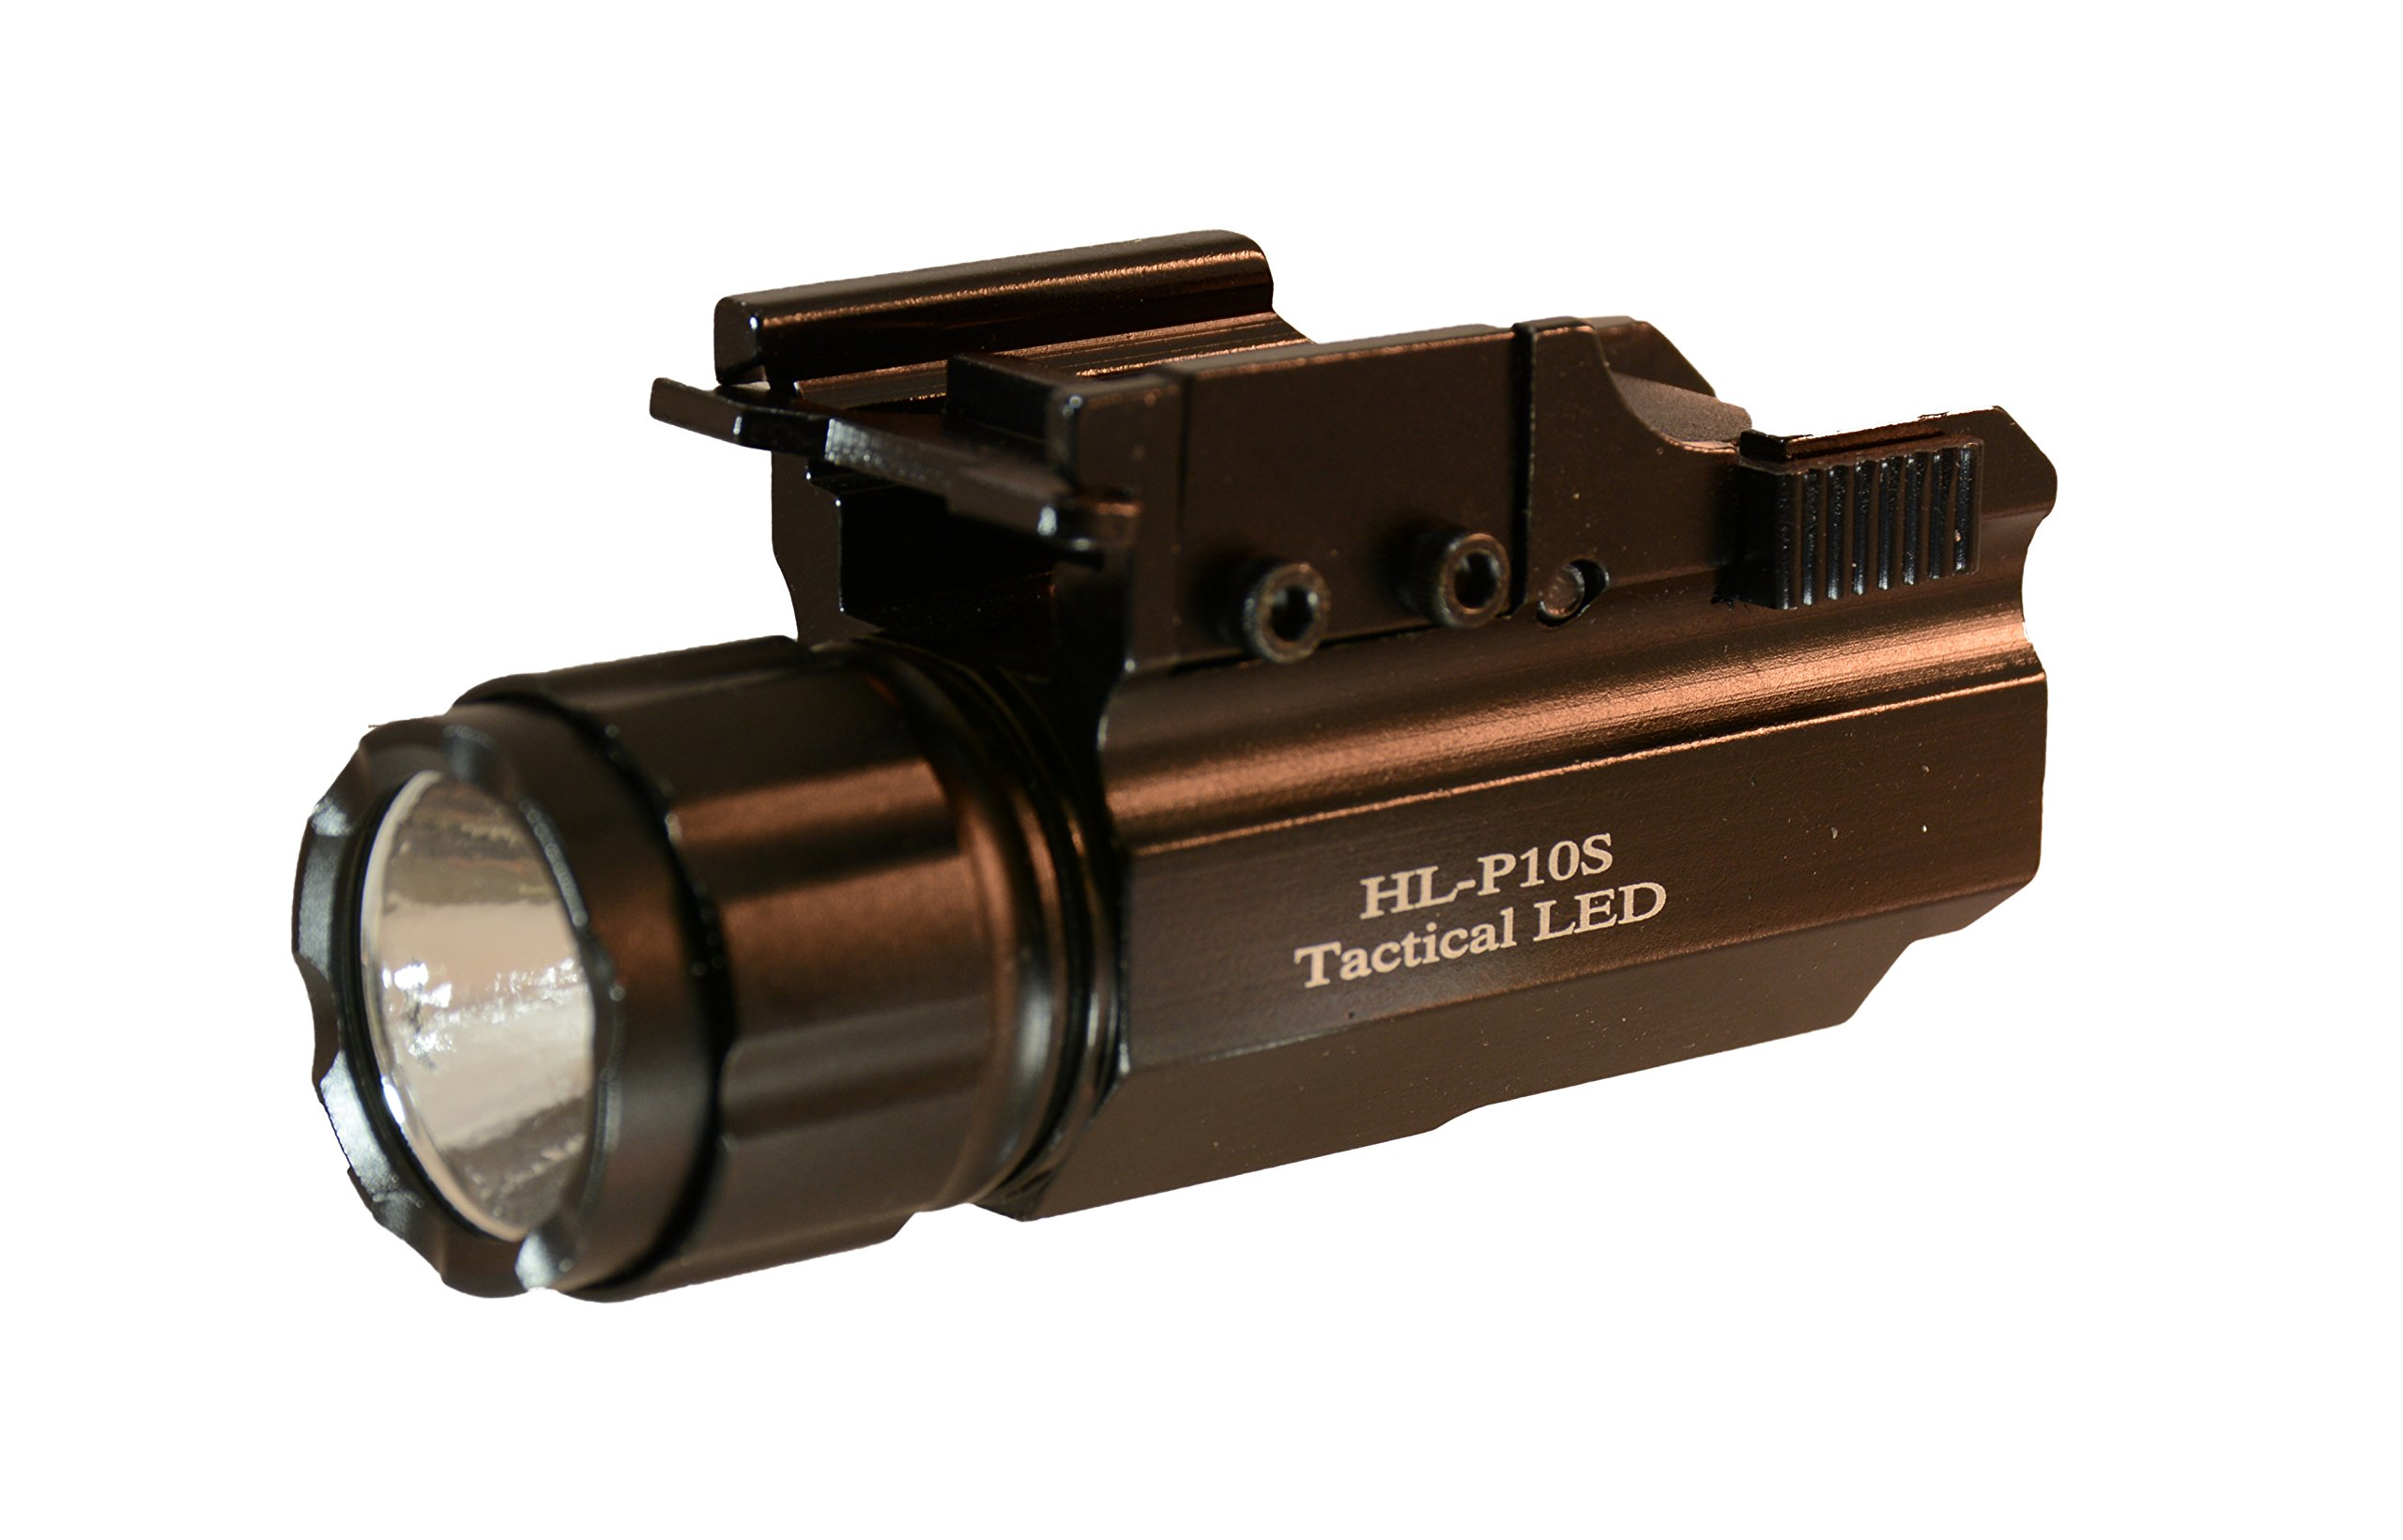 Aimkon HiLight P10S 500 Lumen Pistol LED Strobe Flashlight with Weaver Quick Release for Glock Series, Sig Sauer, Smith & Wesson, Springfield, Beretta, Ruger, and Heckler & Koch, etc. by Aimkon (Image #1)